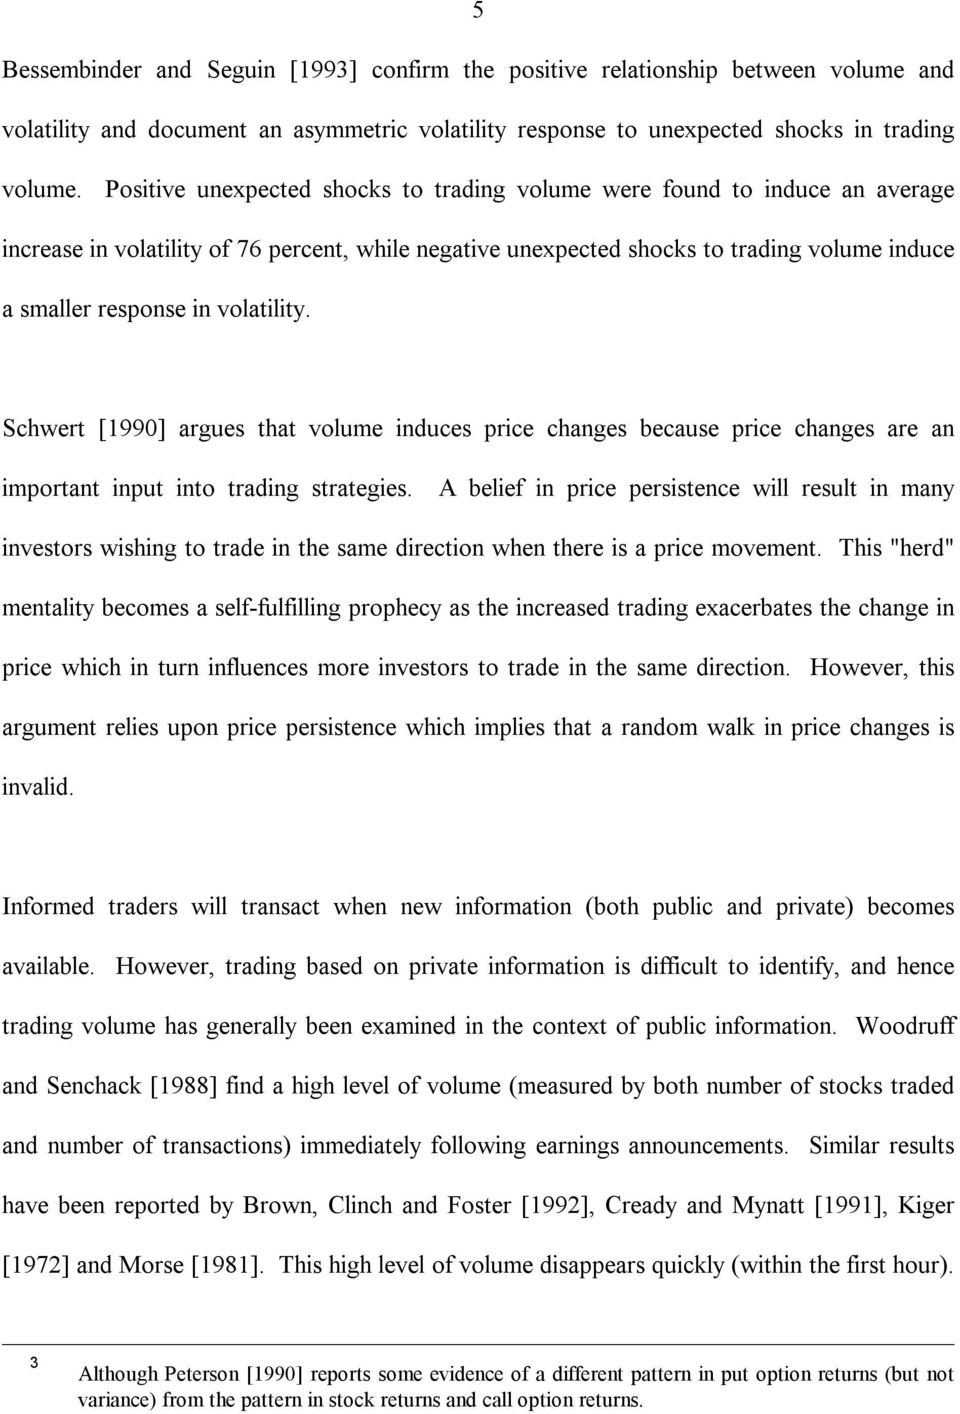 volatility. Schwert [1990] argues that volume induces price changes because price changes are an important input into trading strategies.